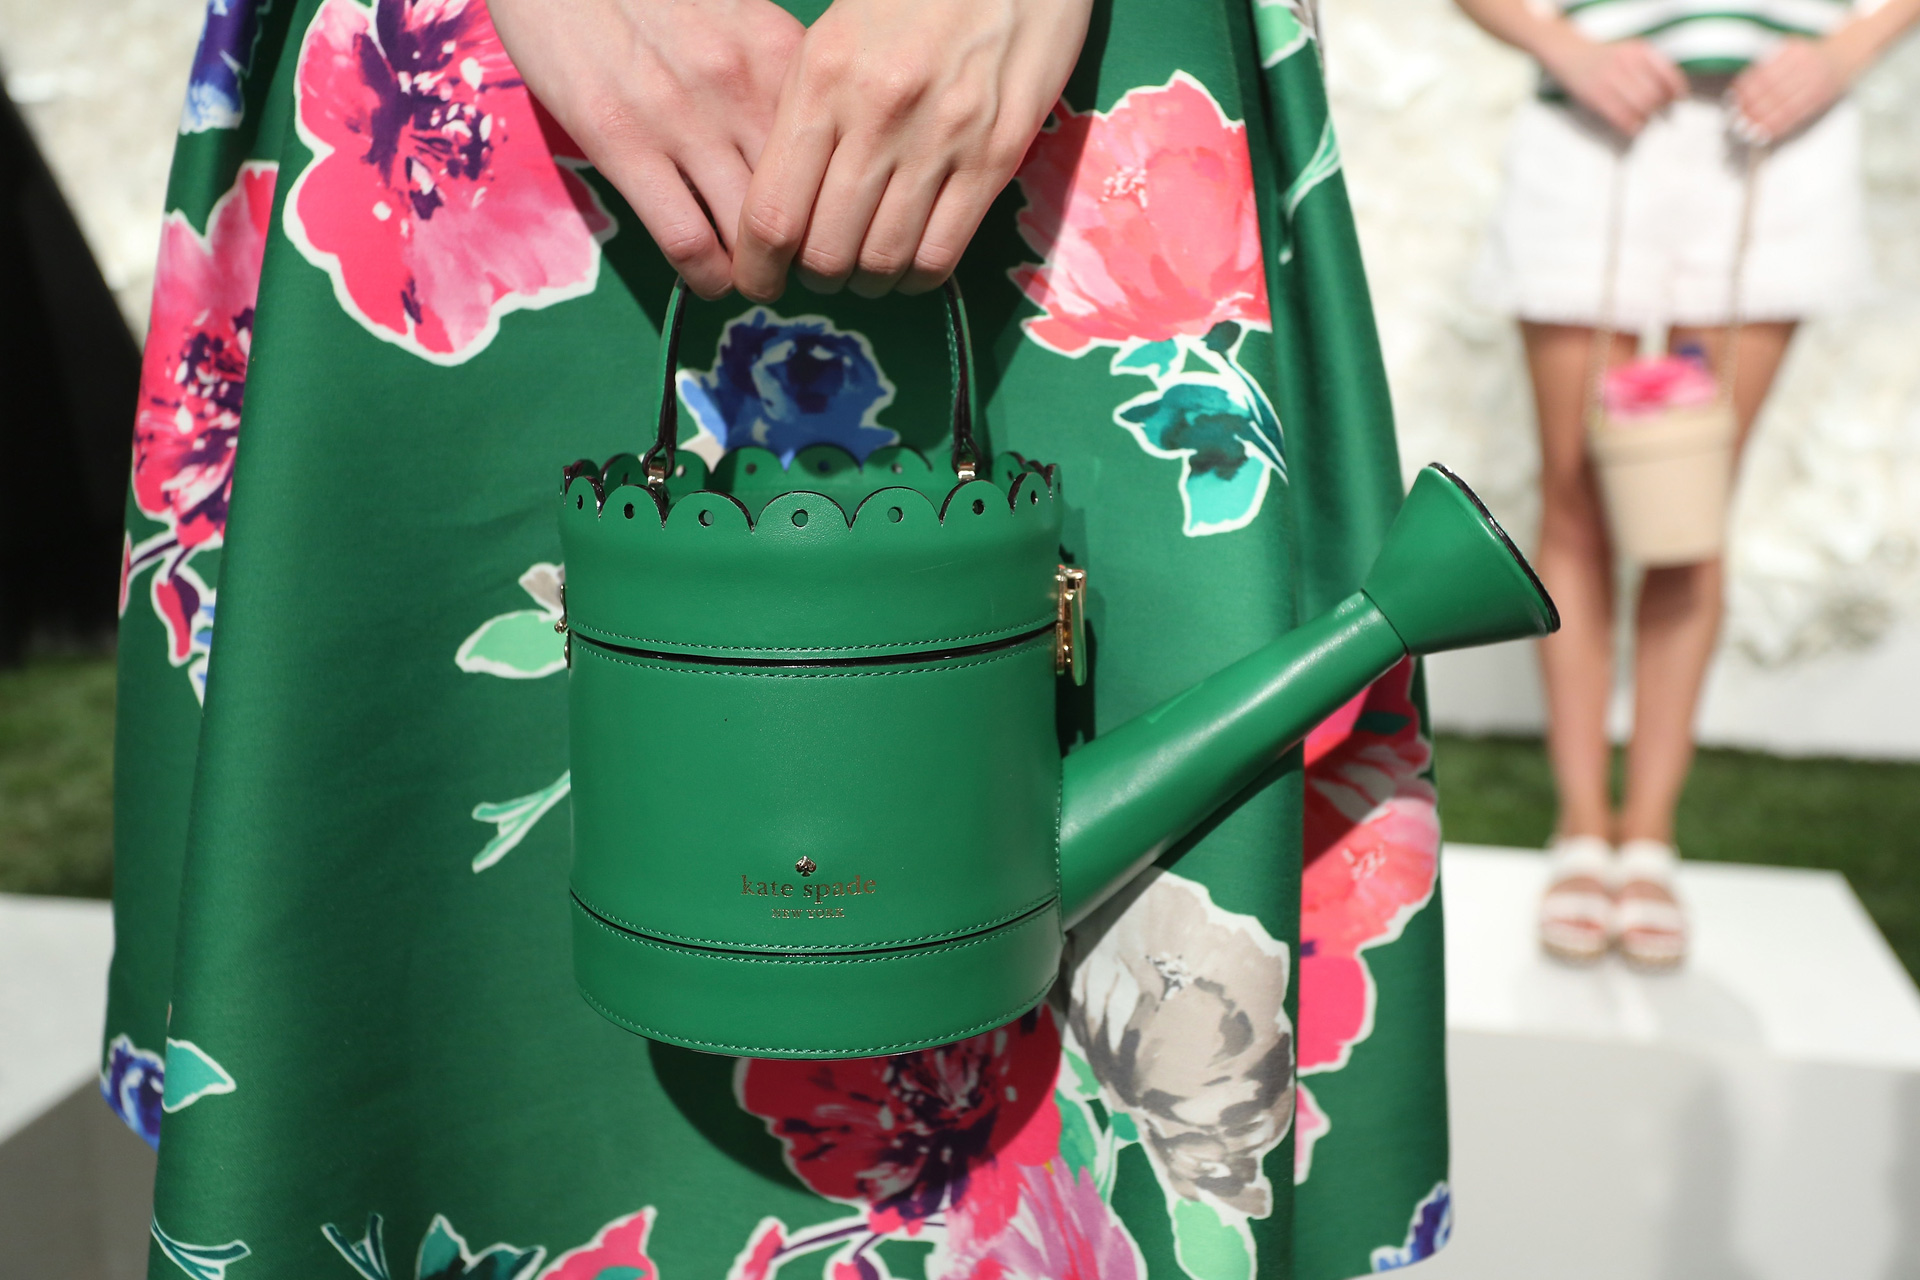 Quirky bags from Kate Spade's spring 2015 collection 9